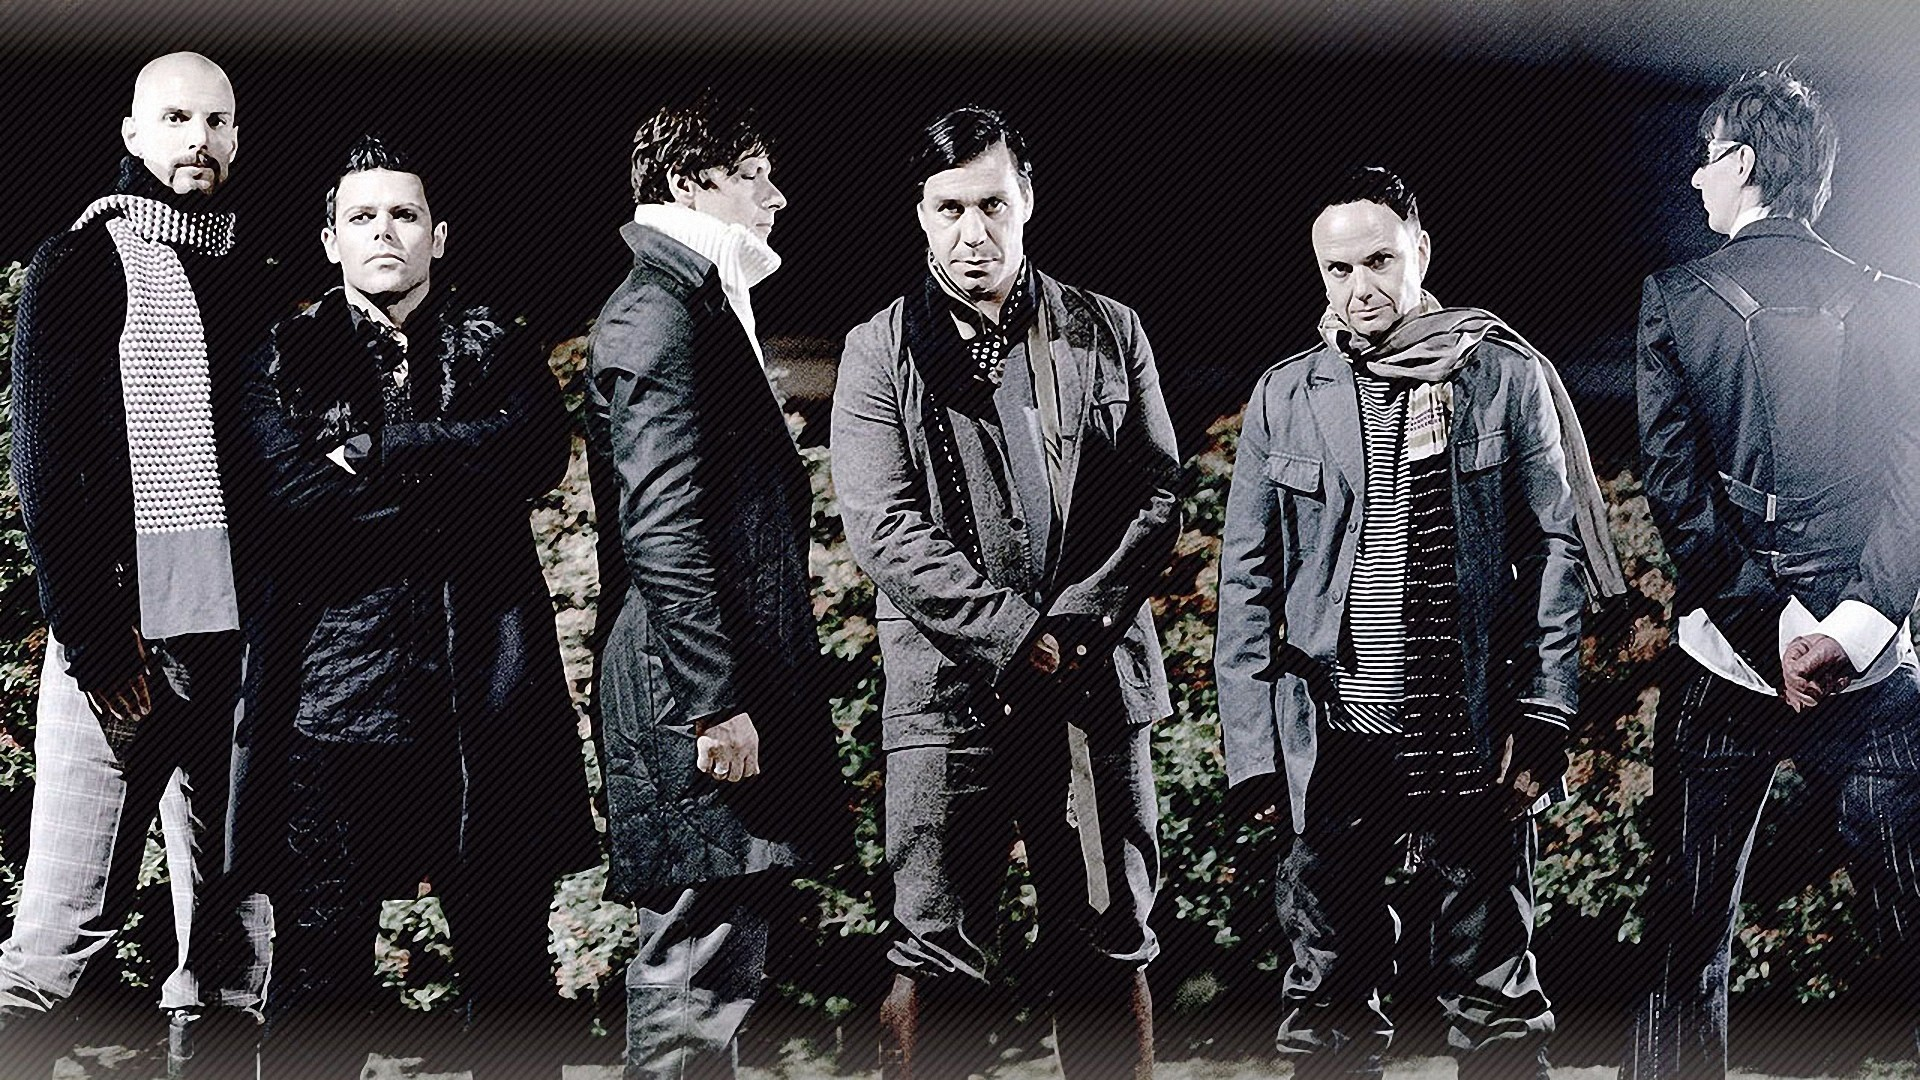 1920x1080 Preview wallpaper rammstein, band, clothes, light, graphics